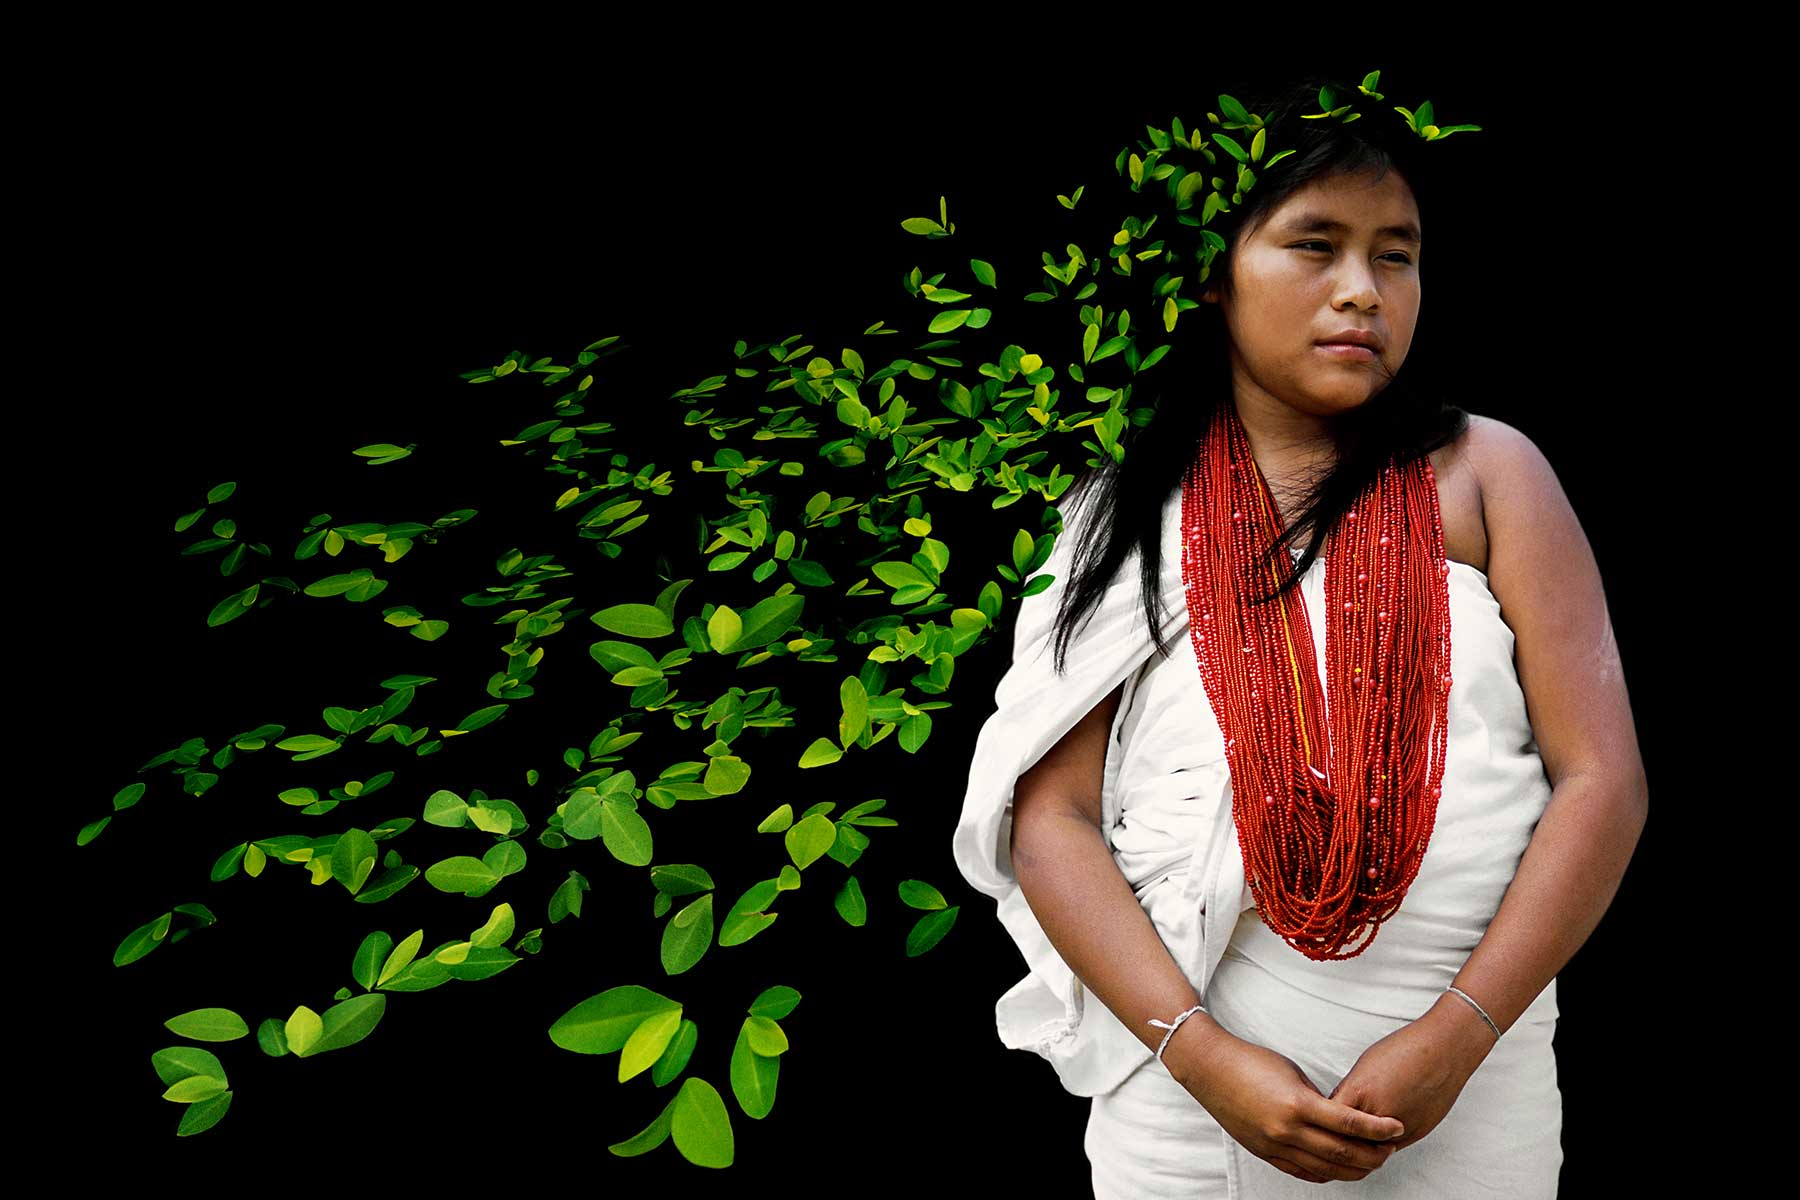 indigenous girl with leaves for hair